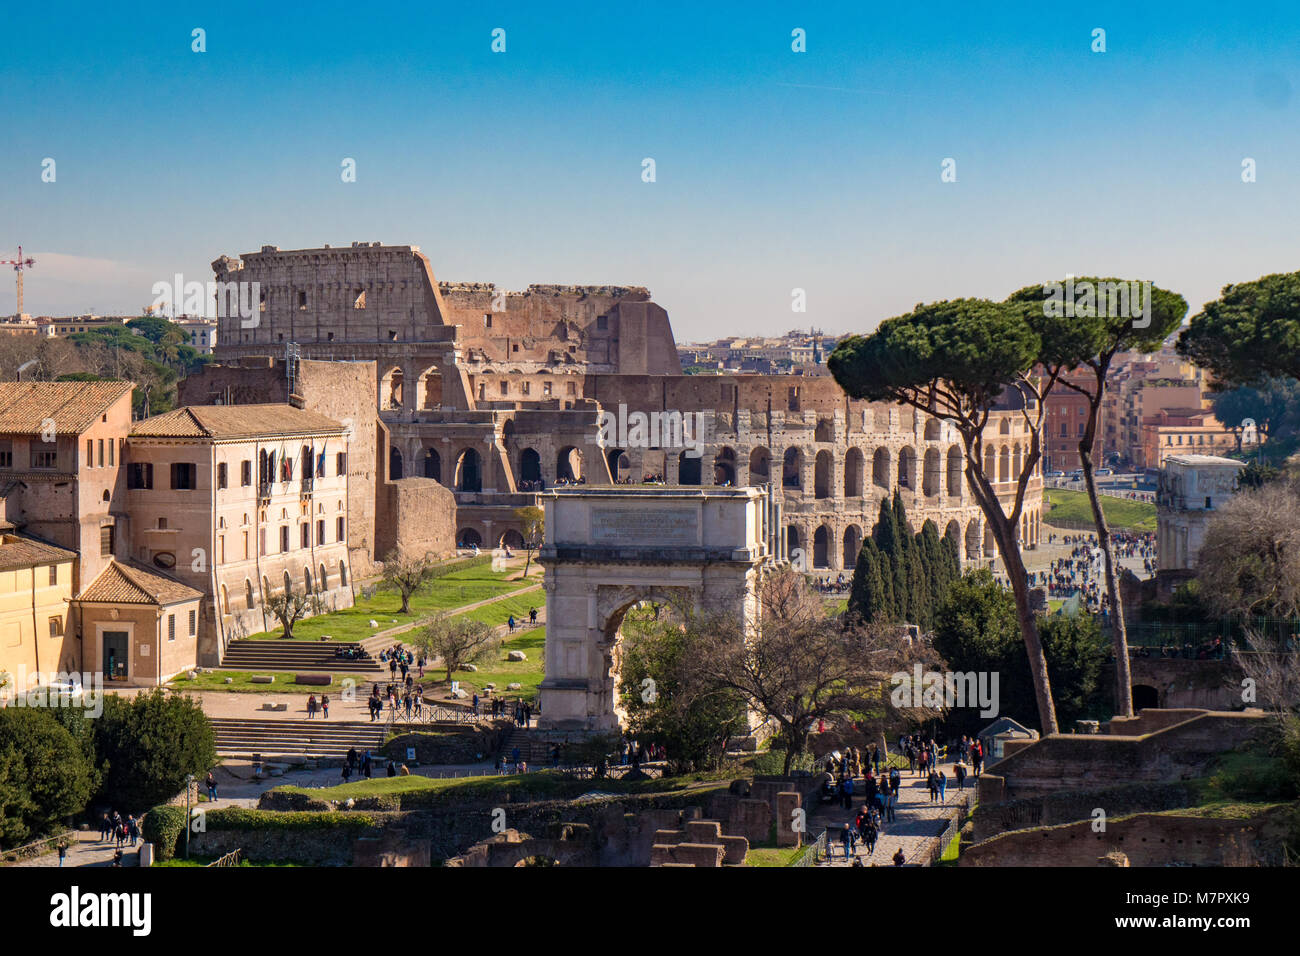 Titus Arch and the Roman Colosseum in Rome, Italy as seen from the Palatine Hill - Stock Image